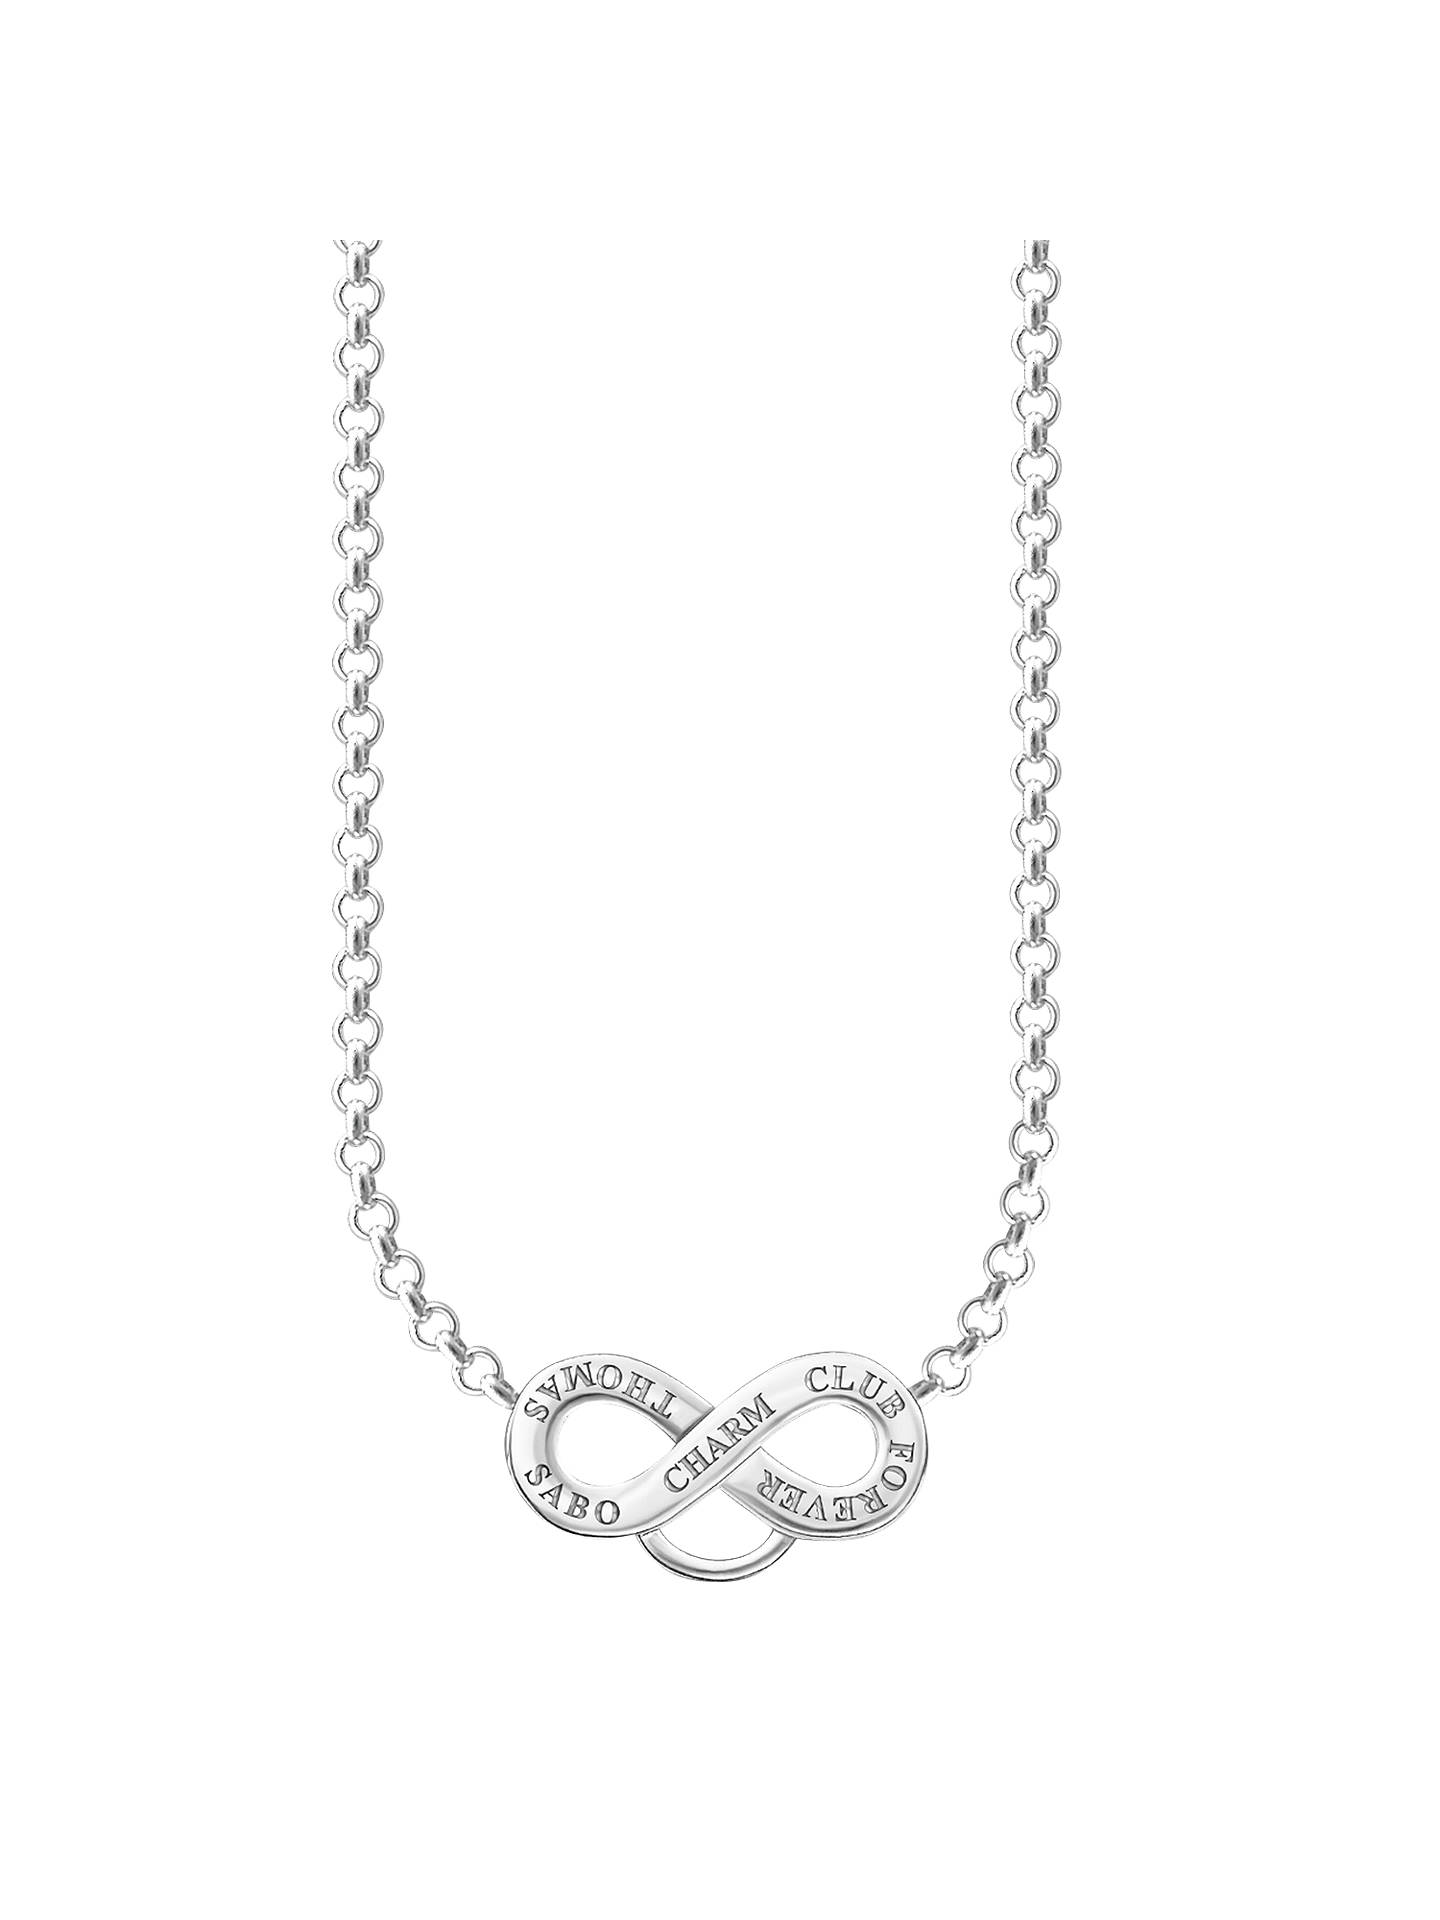 Thomas Sabo Charm Club Infinity Symbol Necklace Silver At John